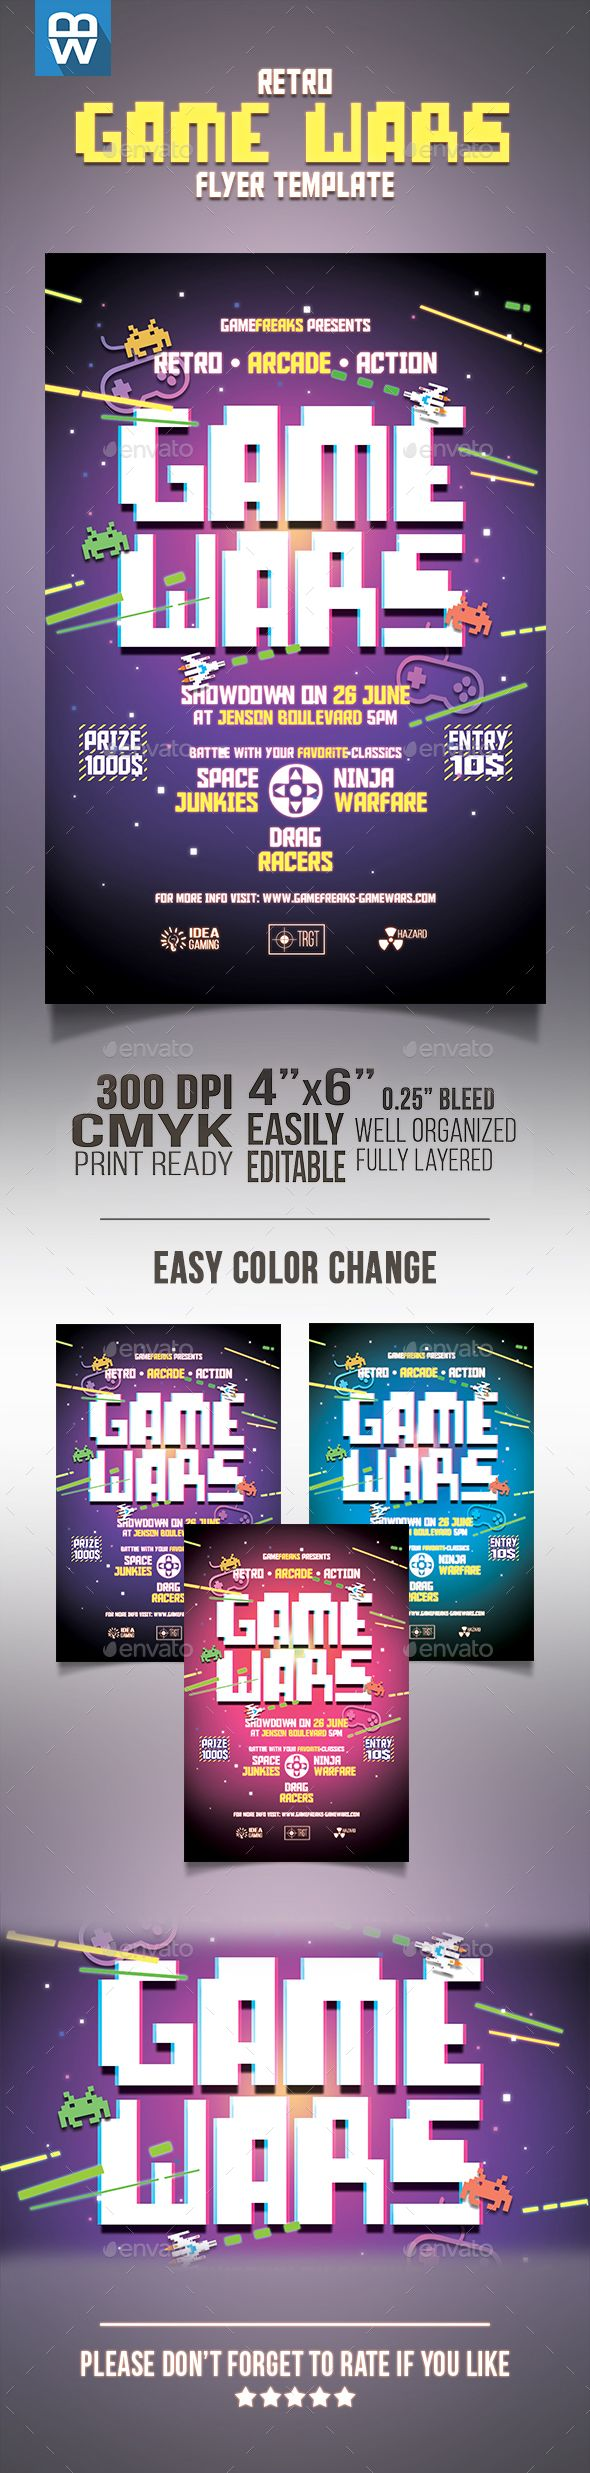 Retro Game Wars Flyer  Retro Games Flyer Template And Retro